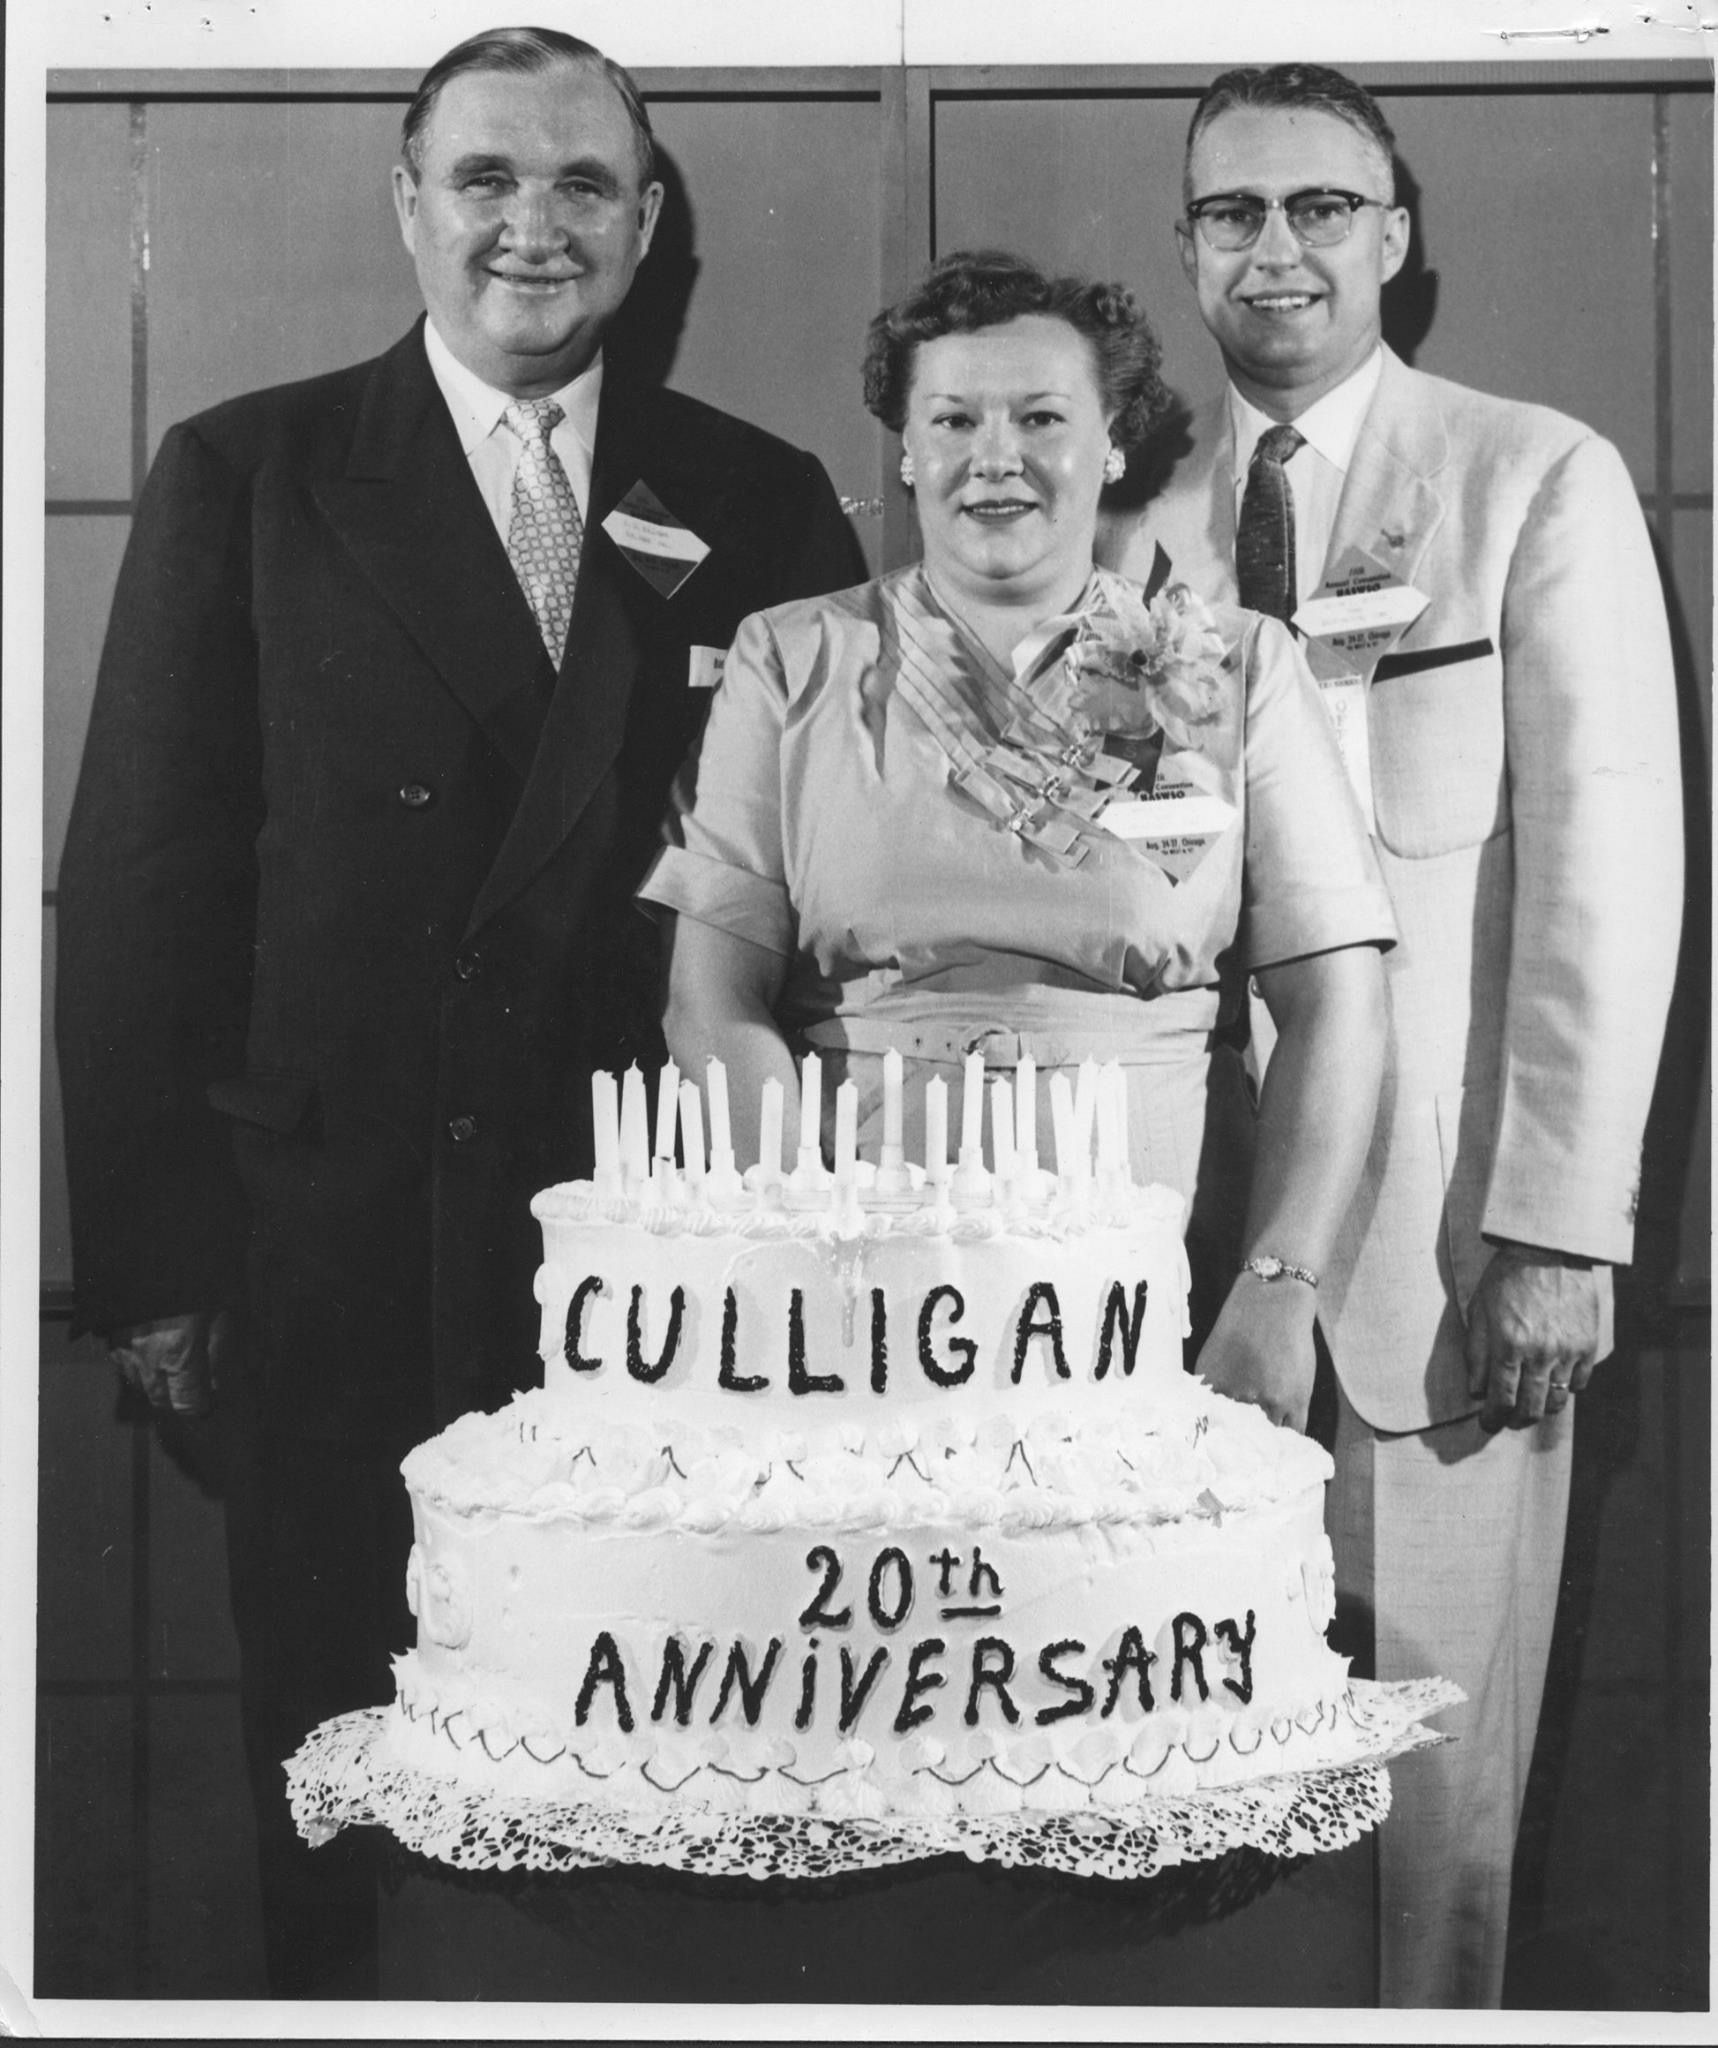 Keith And Marla Vetter Of Vetter S Culligan Water Celebrating 20 Years With Culligan Founder Emmett Culligan Culligan 20th Anniversary Birthday